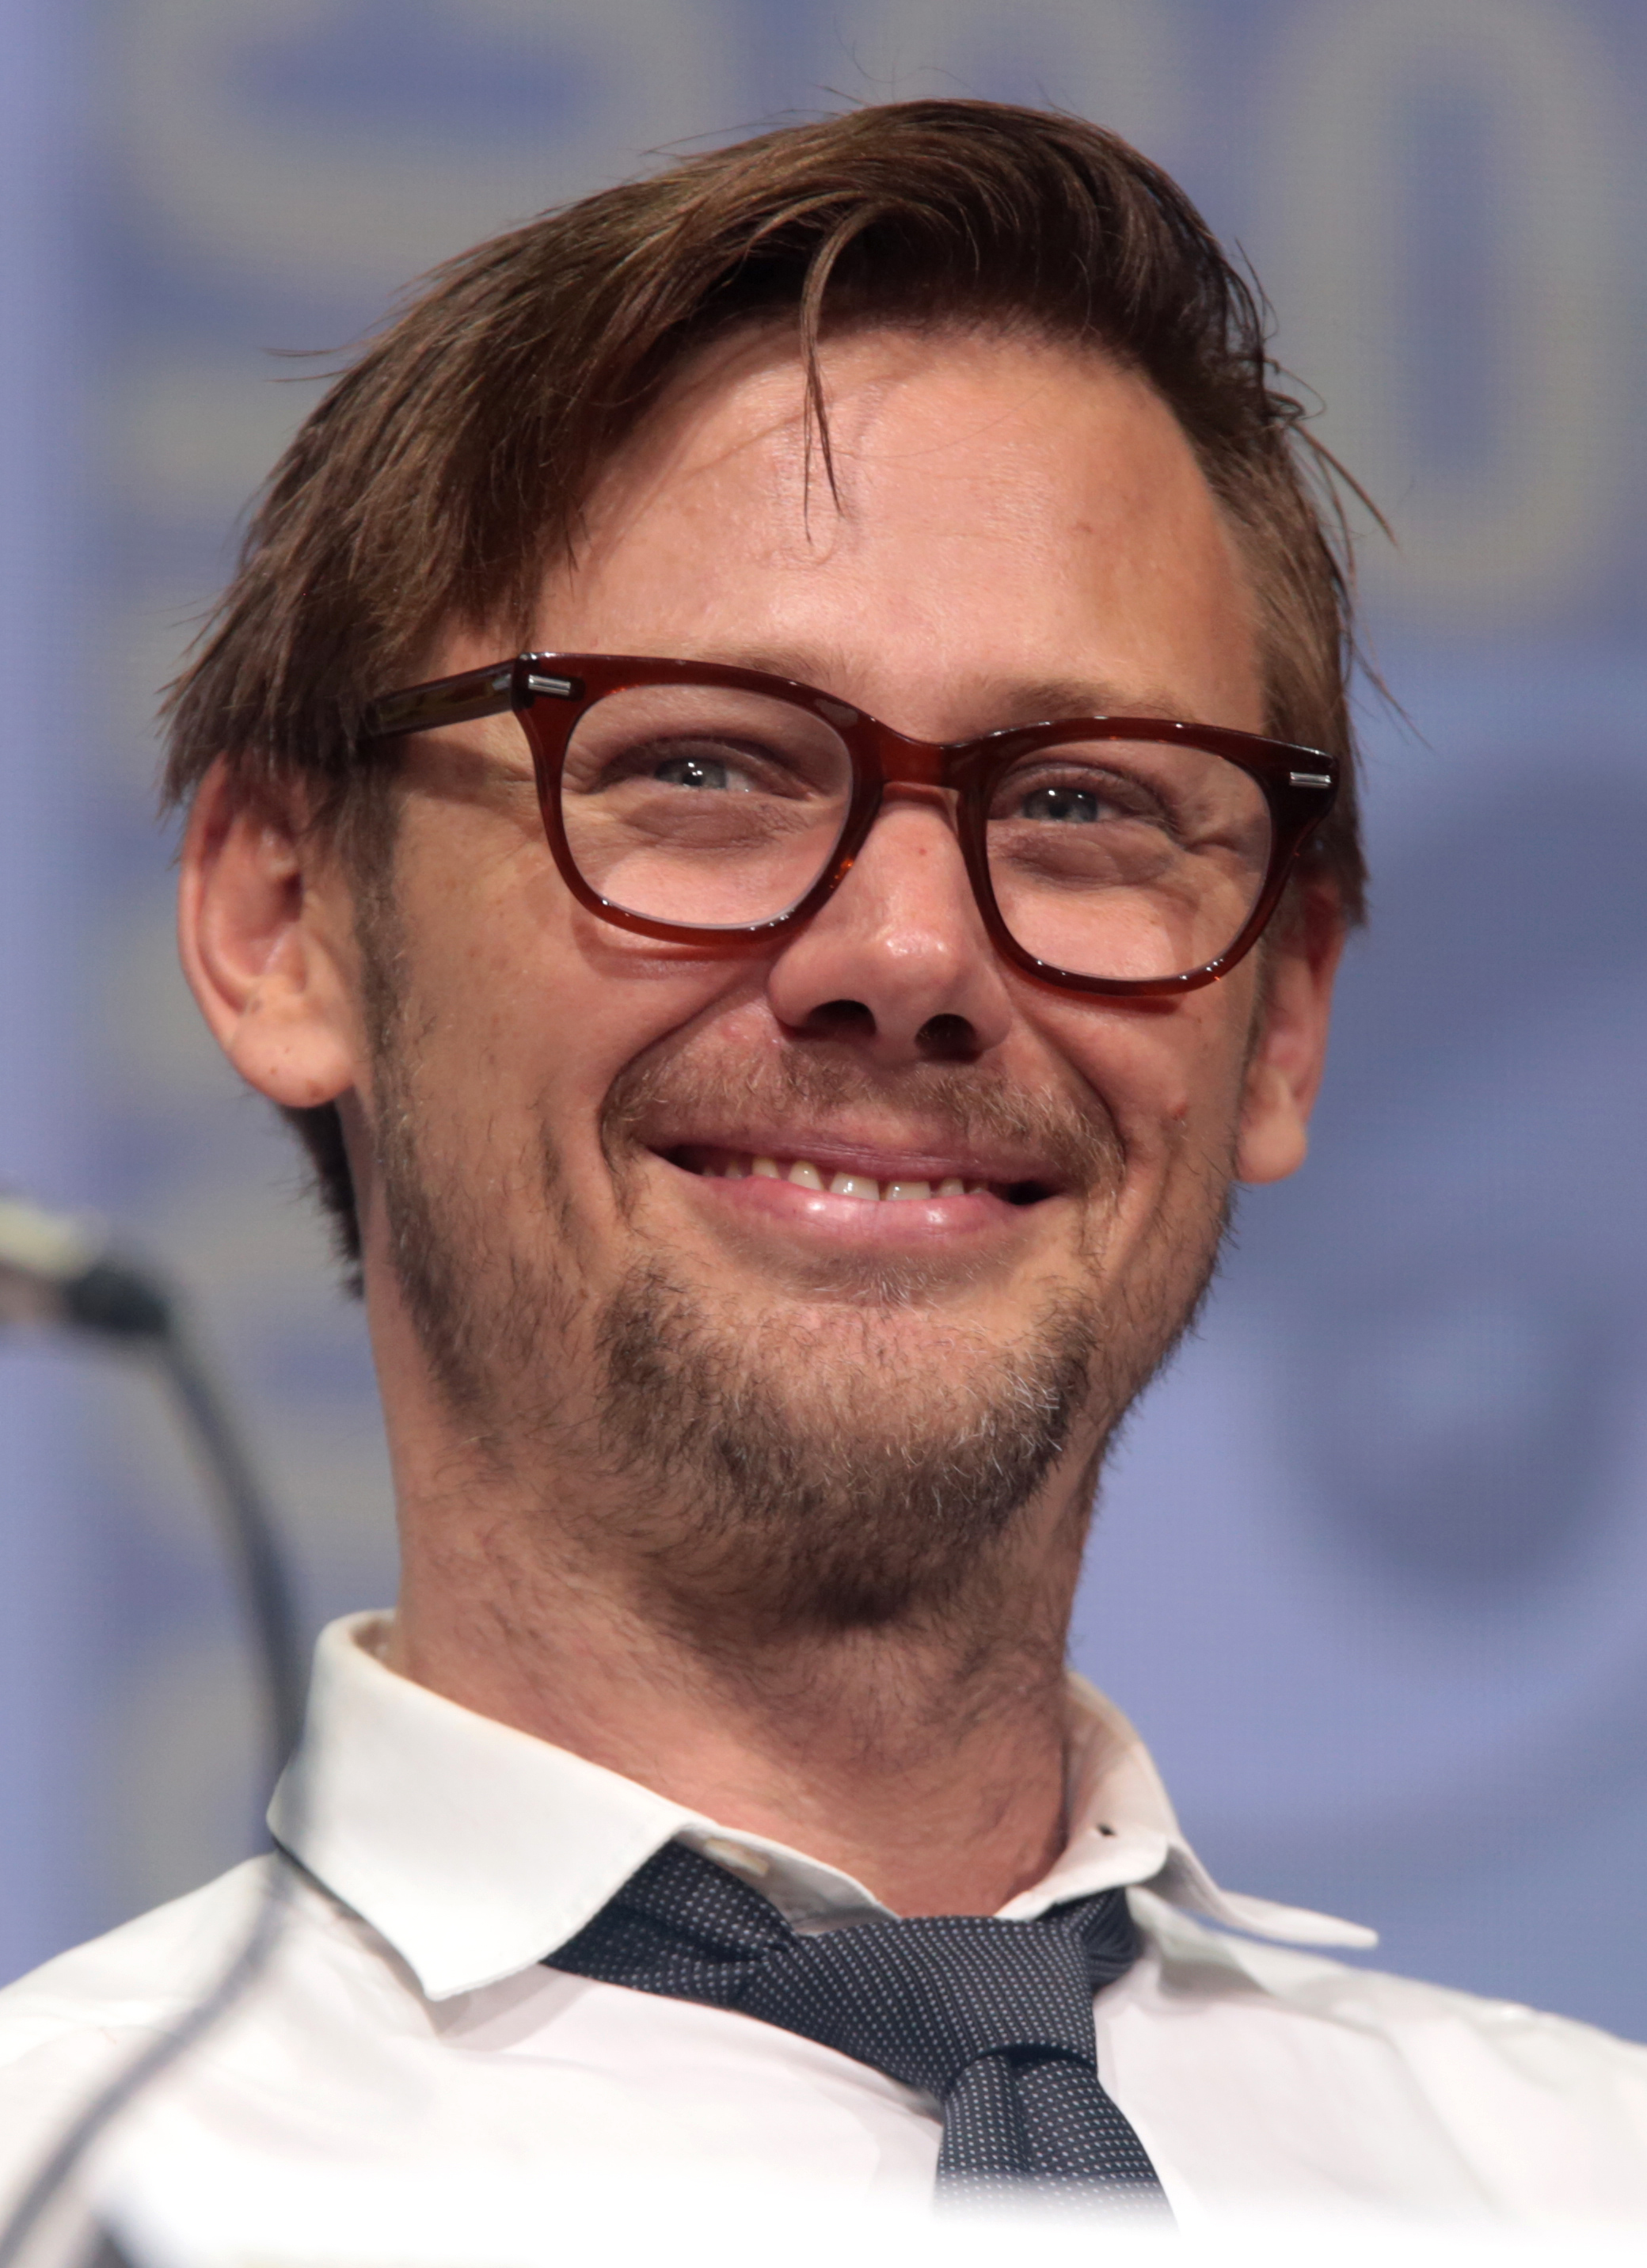 The 42-year old son of father (?) and mother(?) Jimmi Simpson in 2018 photo. Jimmi Simpson earned a  million dollar salary - leaving the net worth at 2 million in 2018